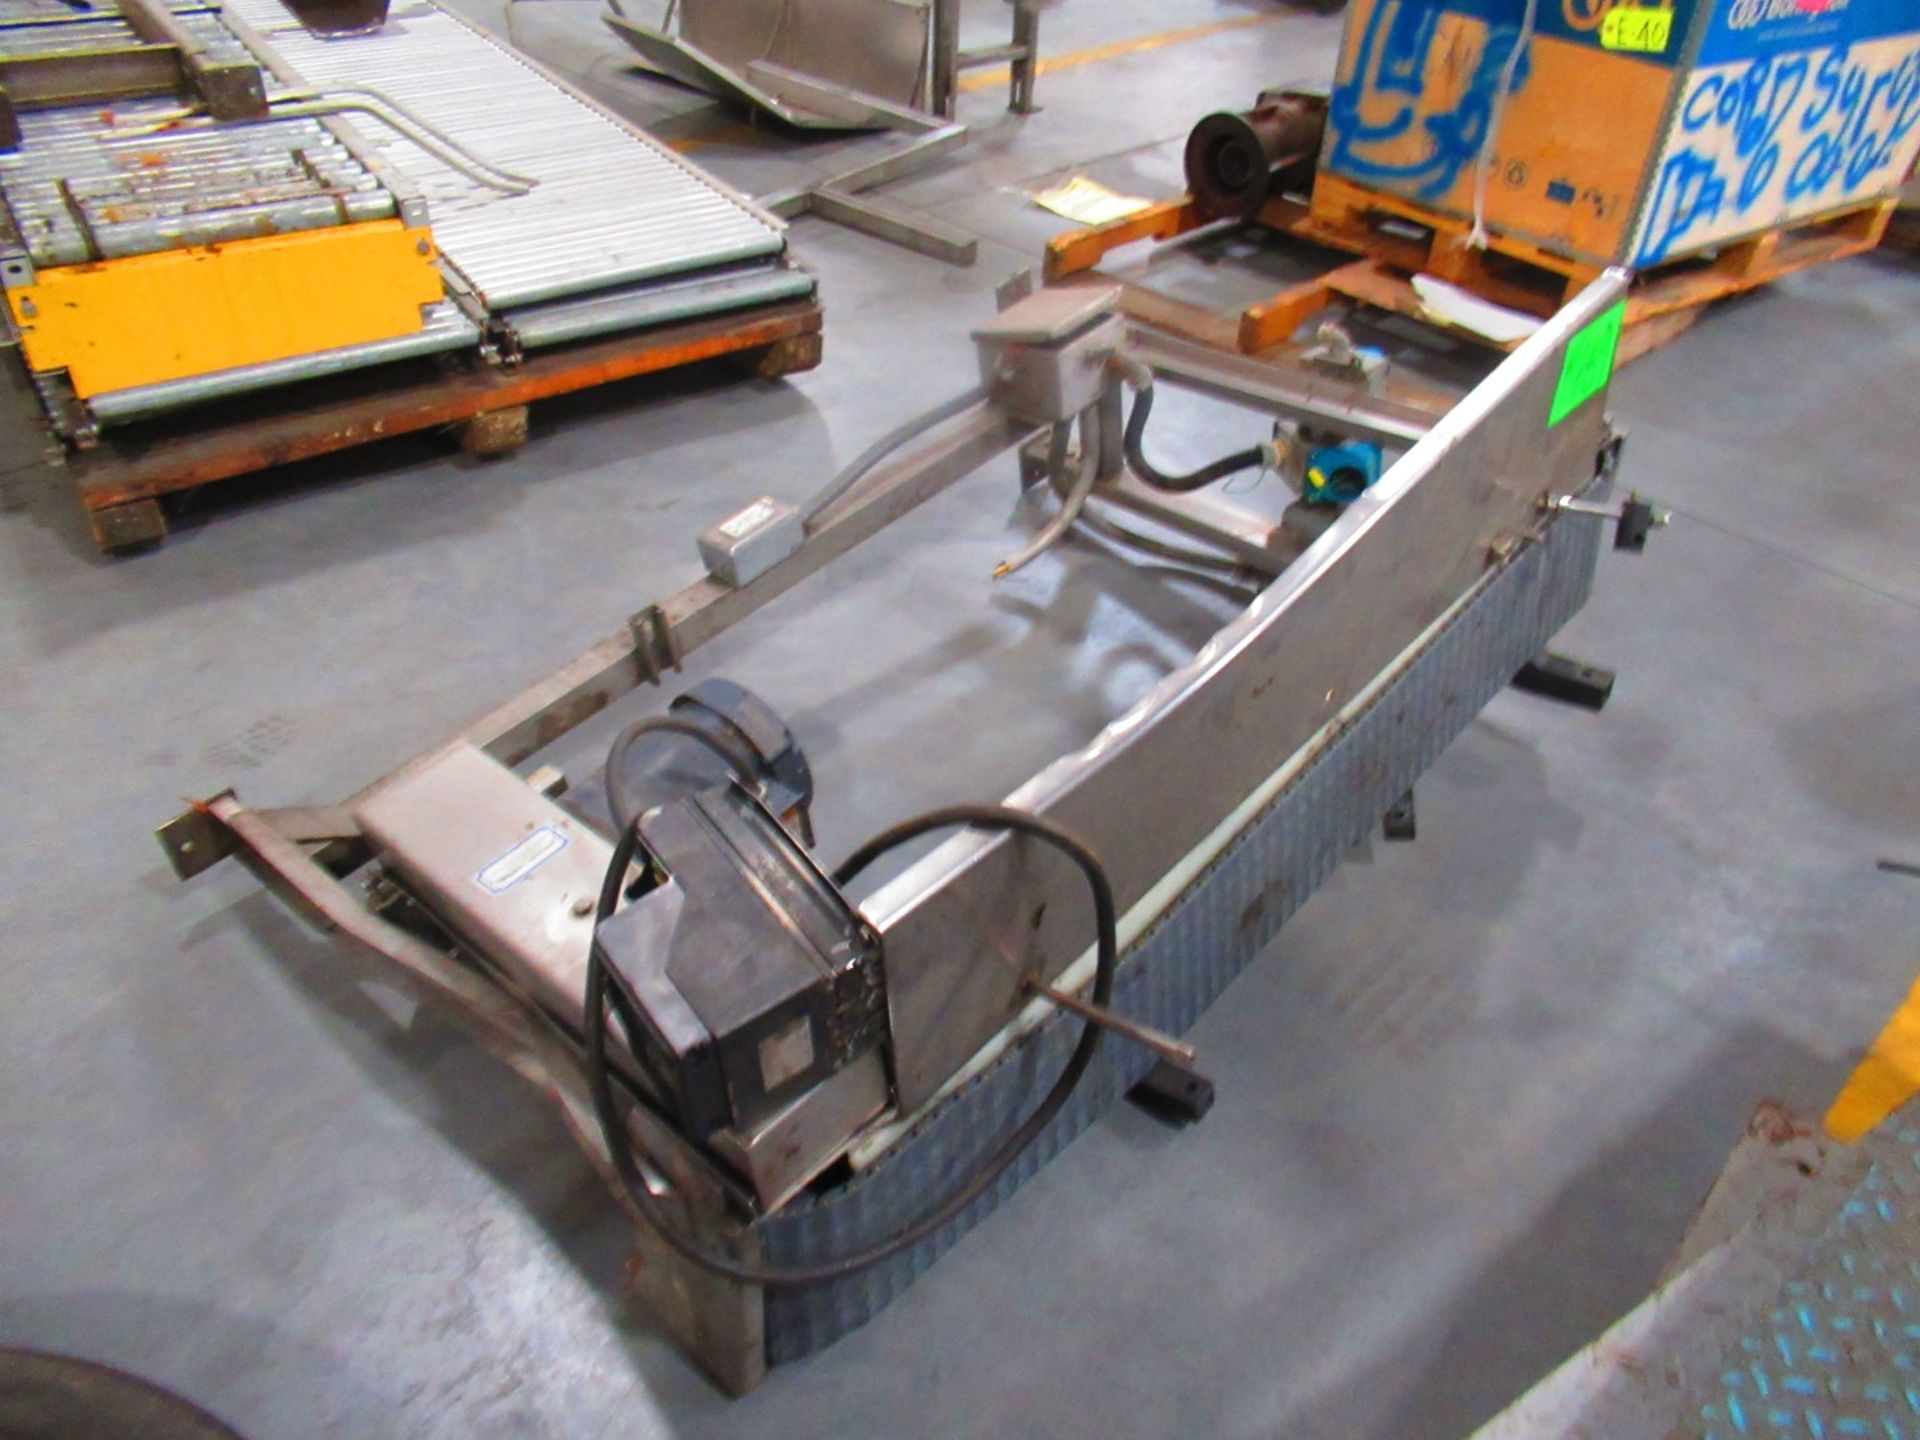 Conveyors - Image 5 of 7